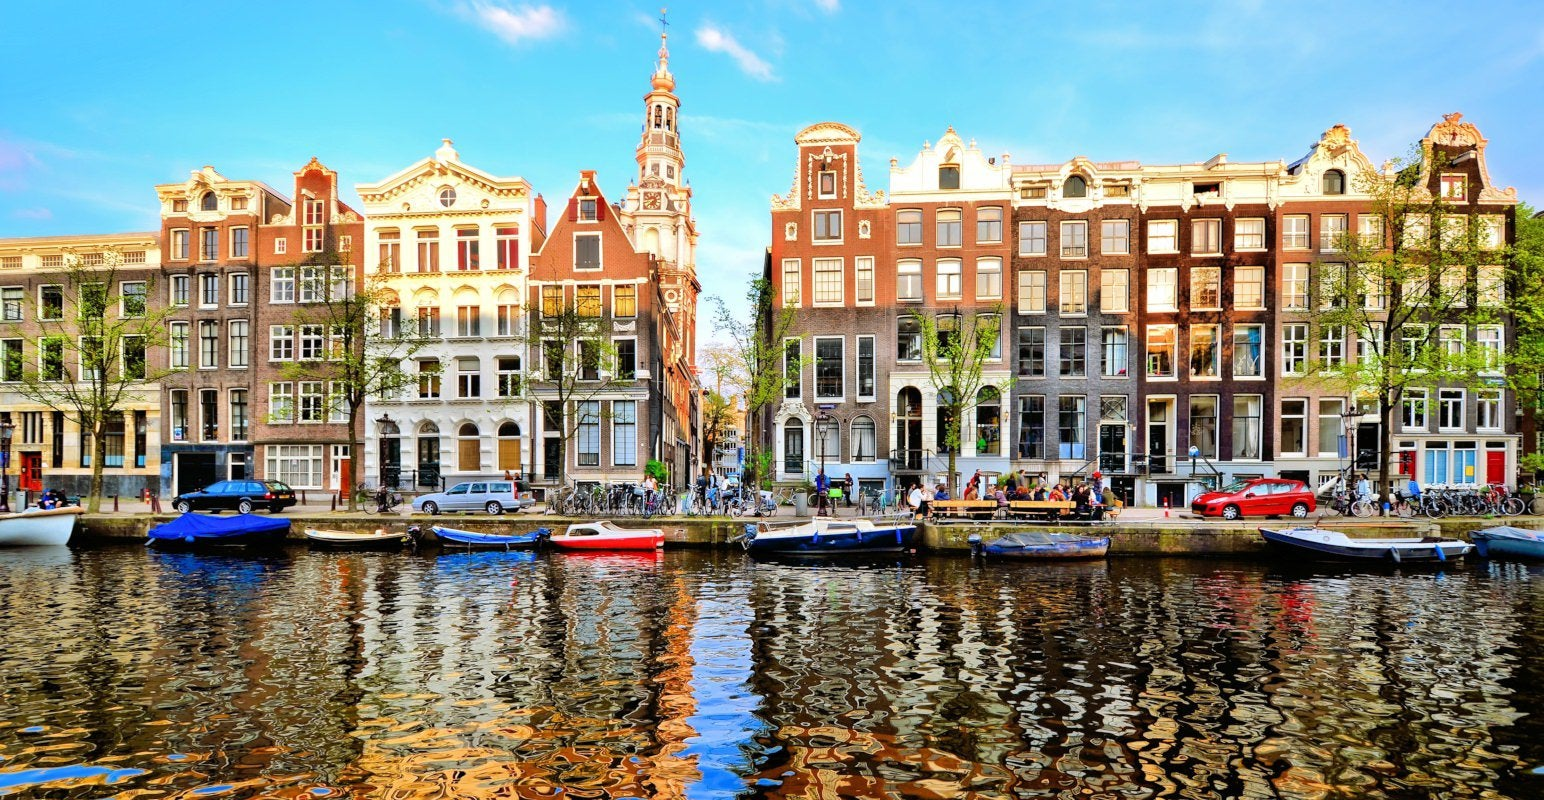 Netherlands to open applications for cannabis cultivation experiment next month